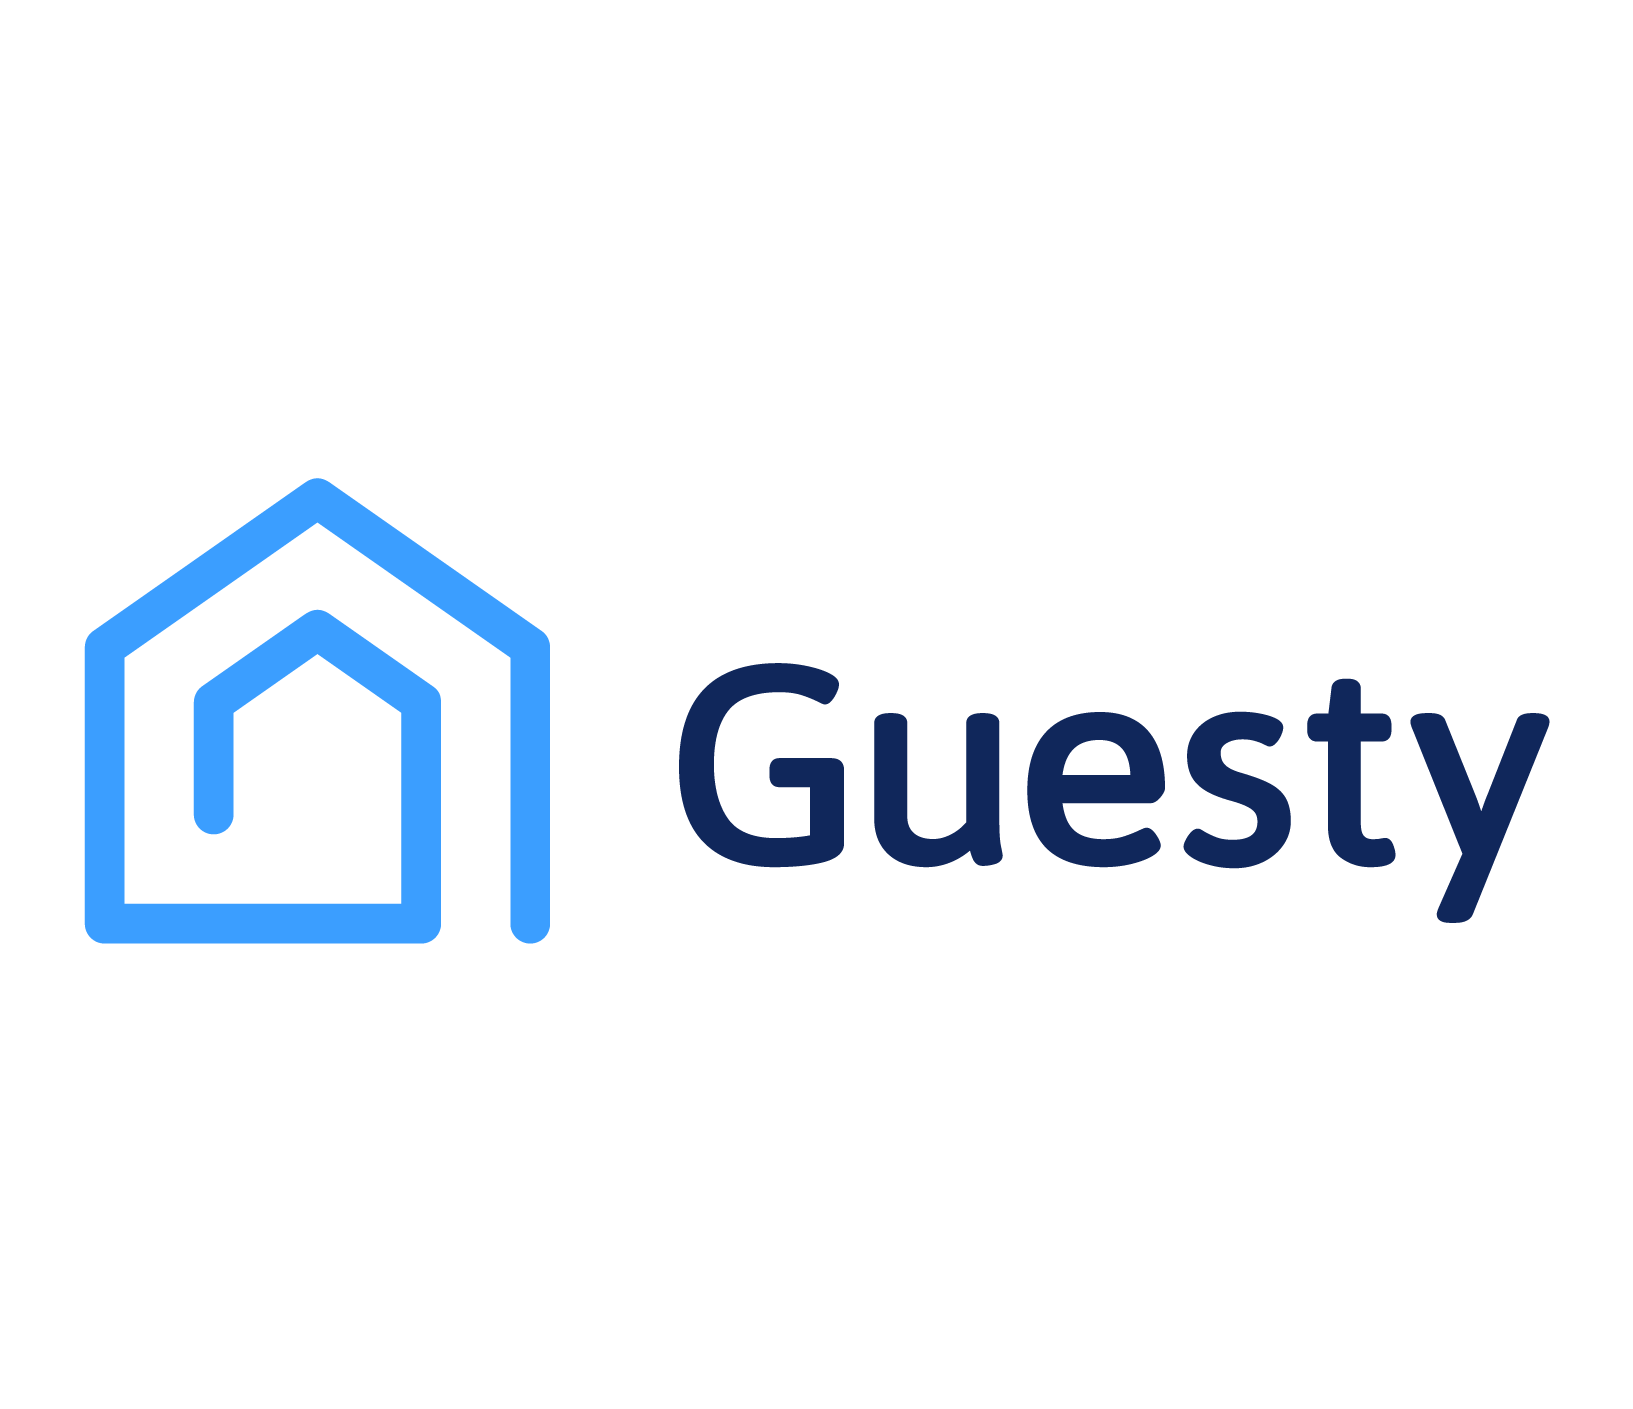 Guesty.logo.png